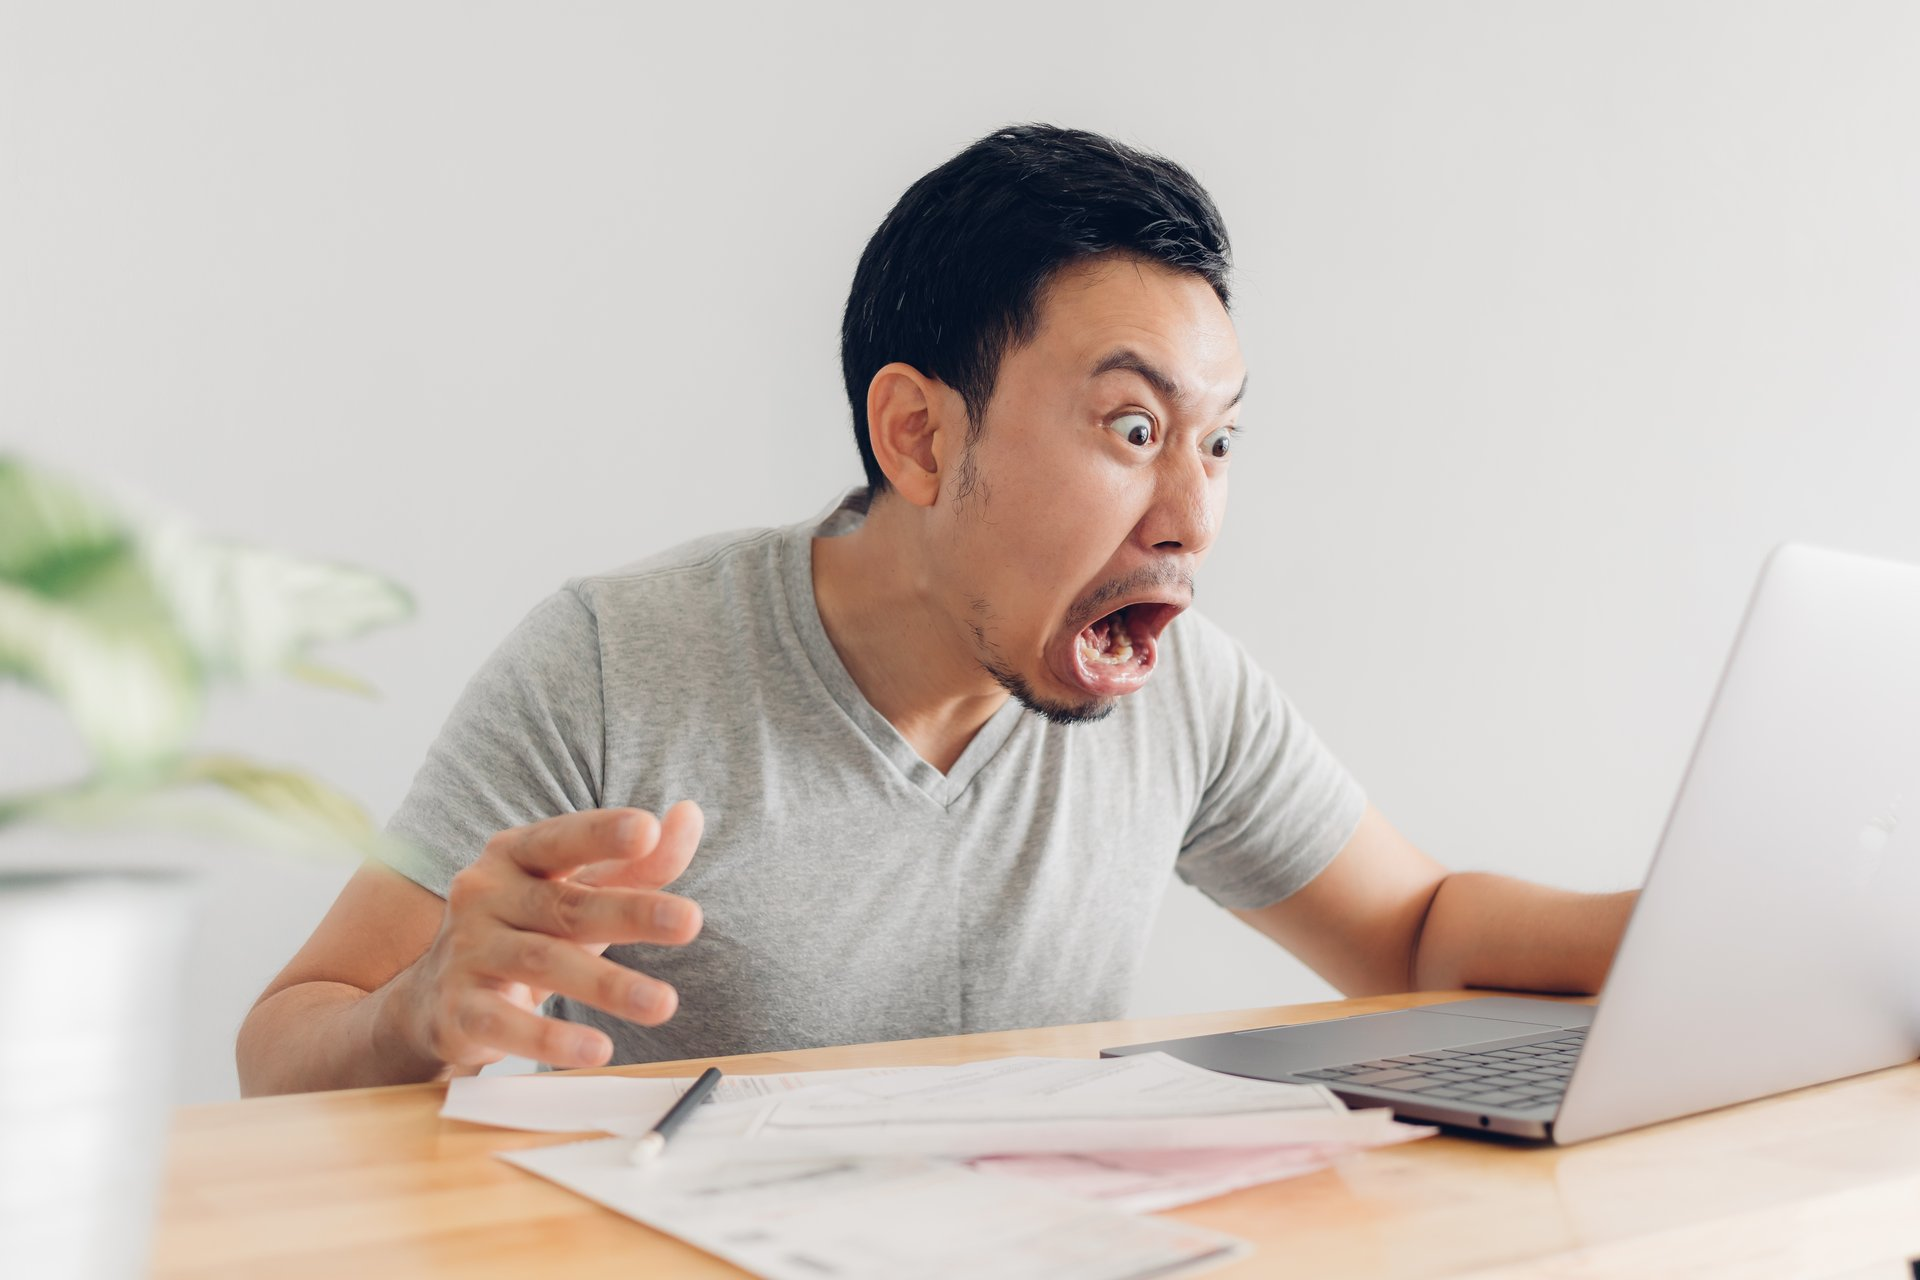 A young Asian man at his laptop computer is surprised and shocked by a bill